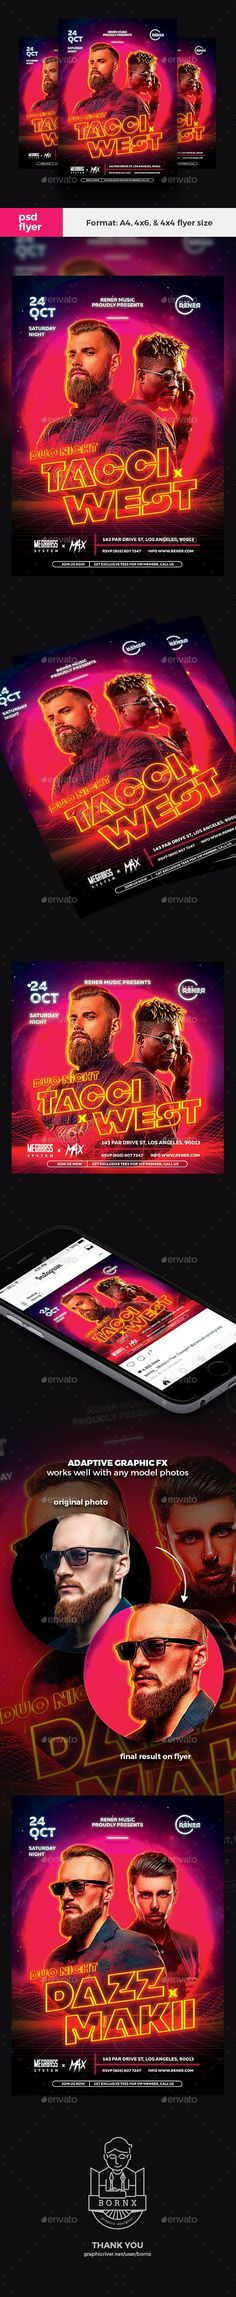 Duo DJ techno flyer template PSD for Photoshop perfect to promote your DJ concert, DJ battle, or DJ party. Available in and square flyer format. Club Poster, Party Poster, Flyer And Poster Design, Flyer Design, Dj Techno, Party Flyer, Dj Party, Concert Flyer, Psd Flyer Templates